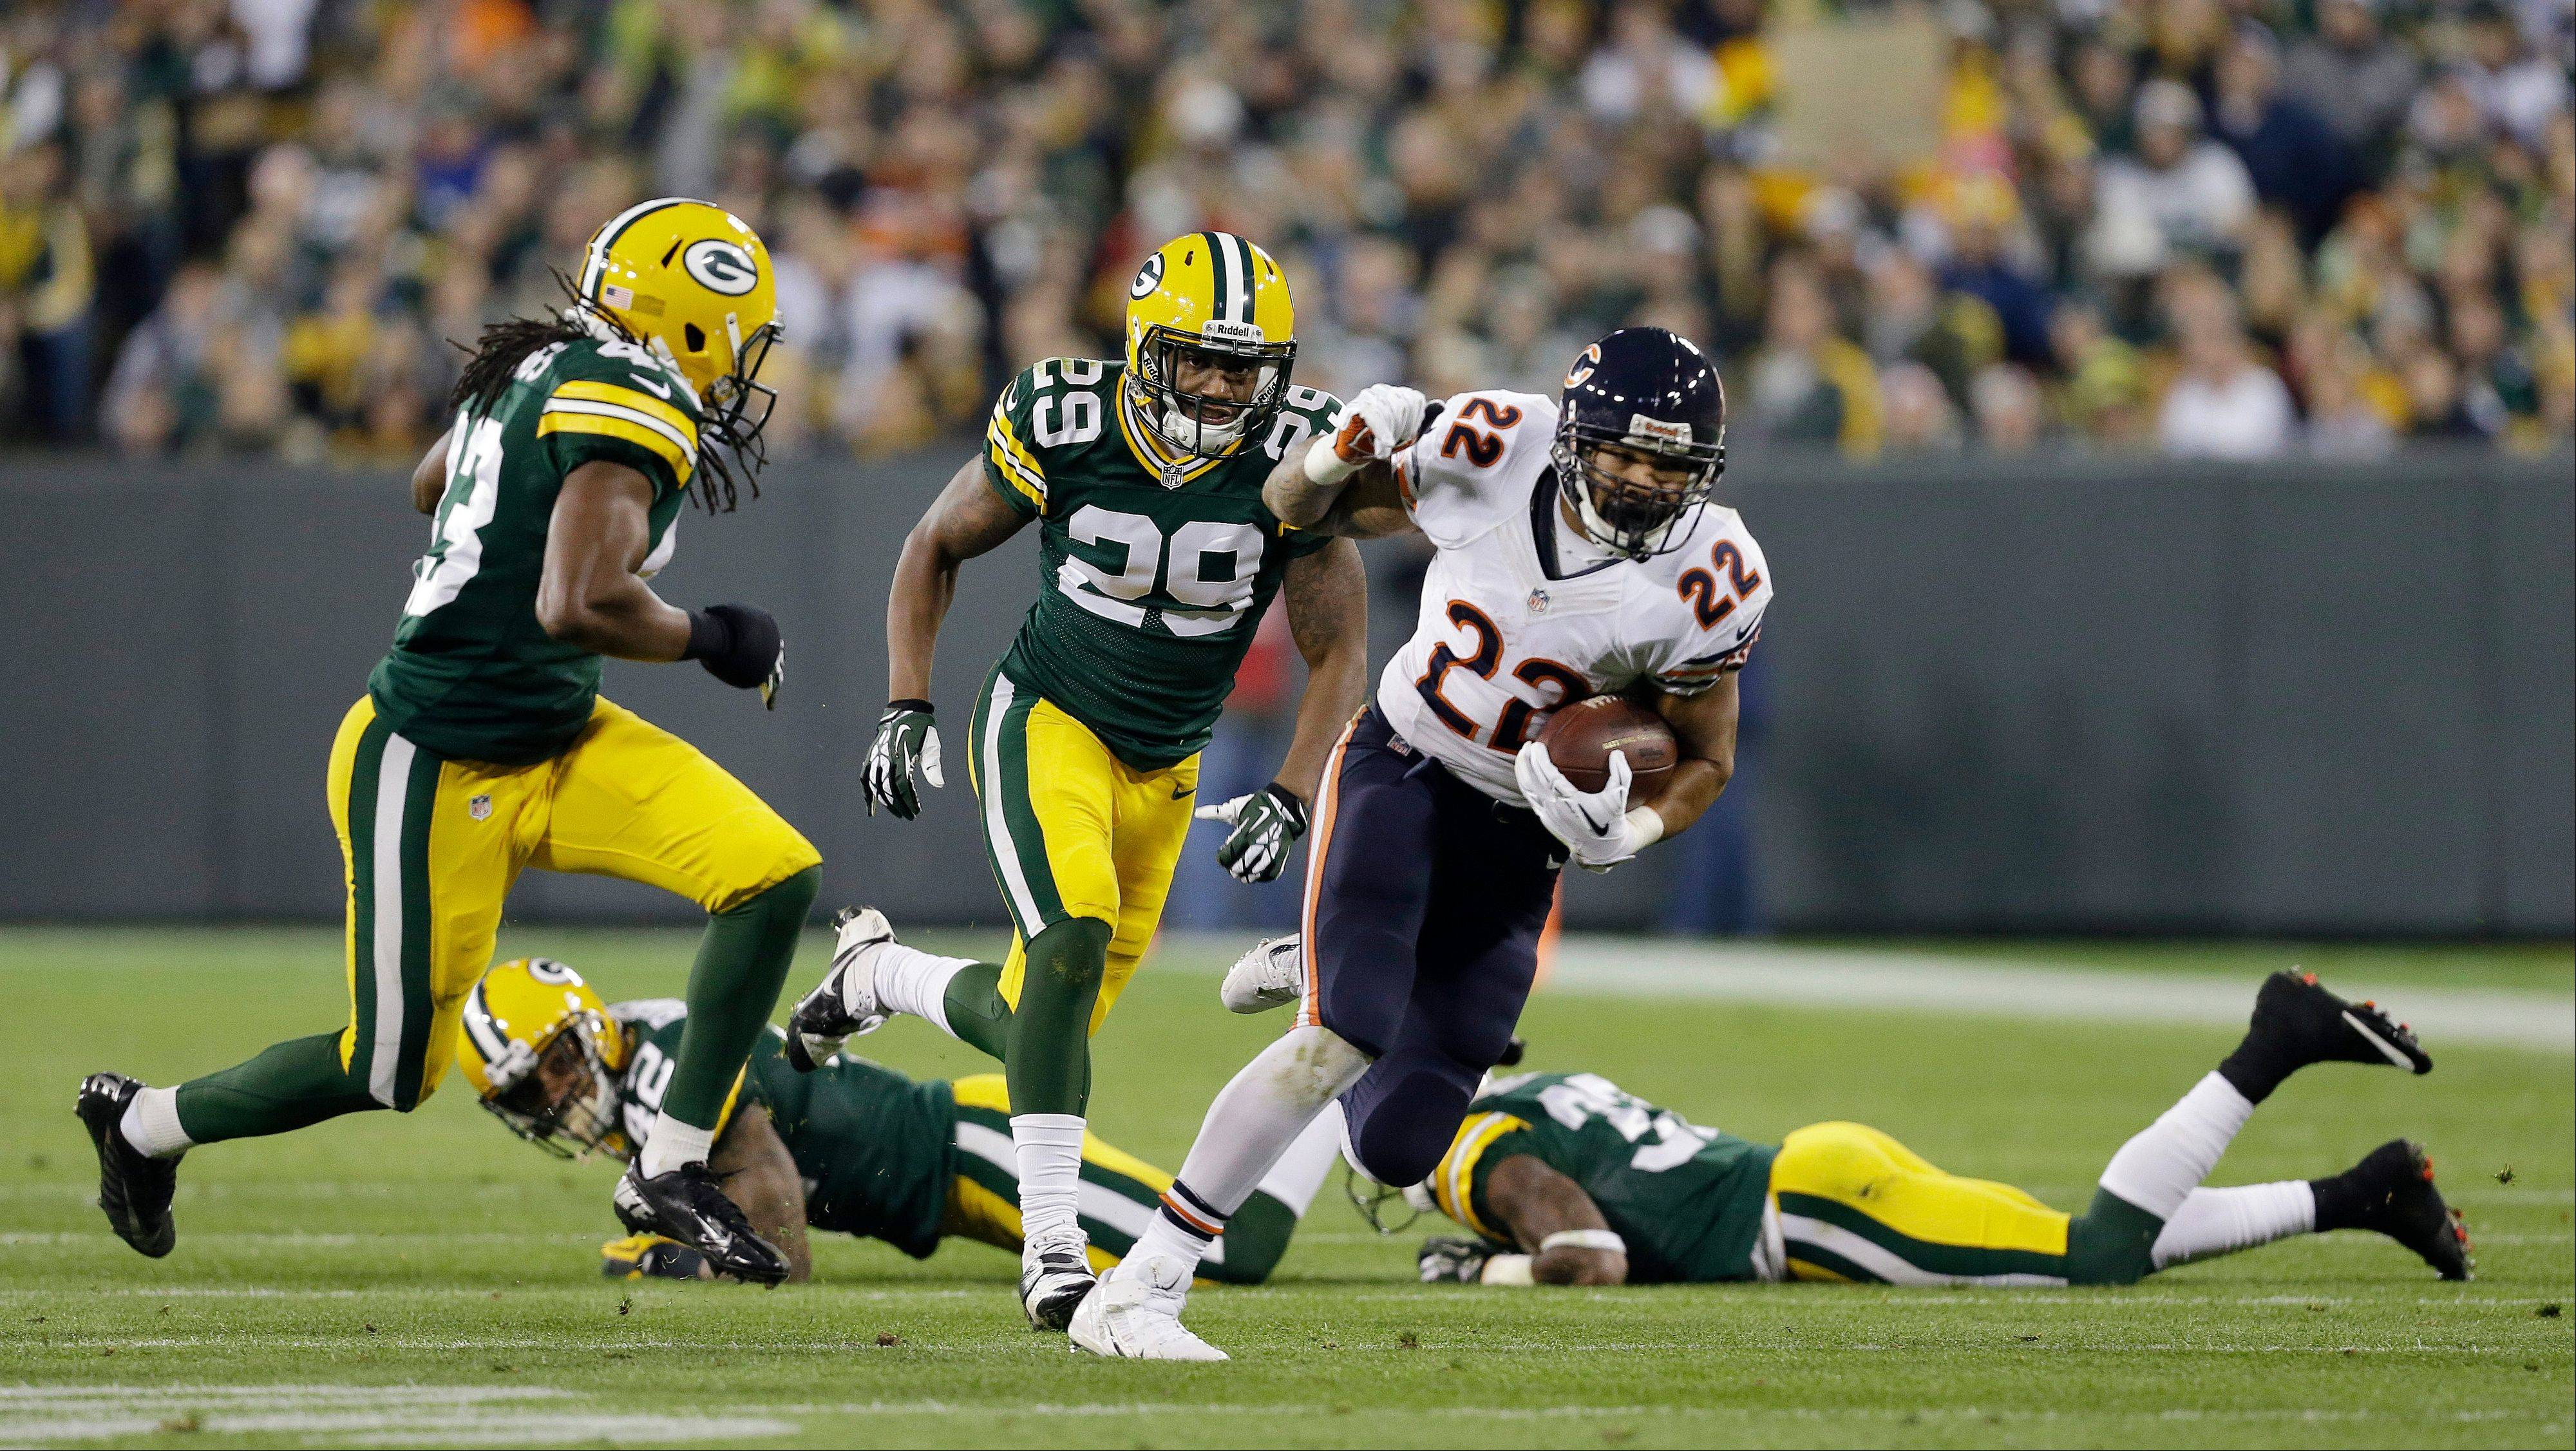 Green Bay Packers' Jerron McMillian (22) breaks away during the first half.